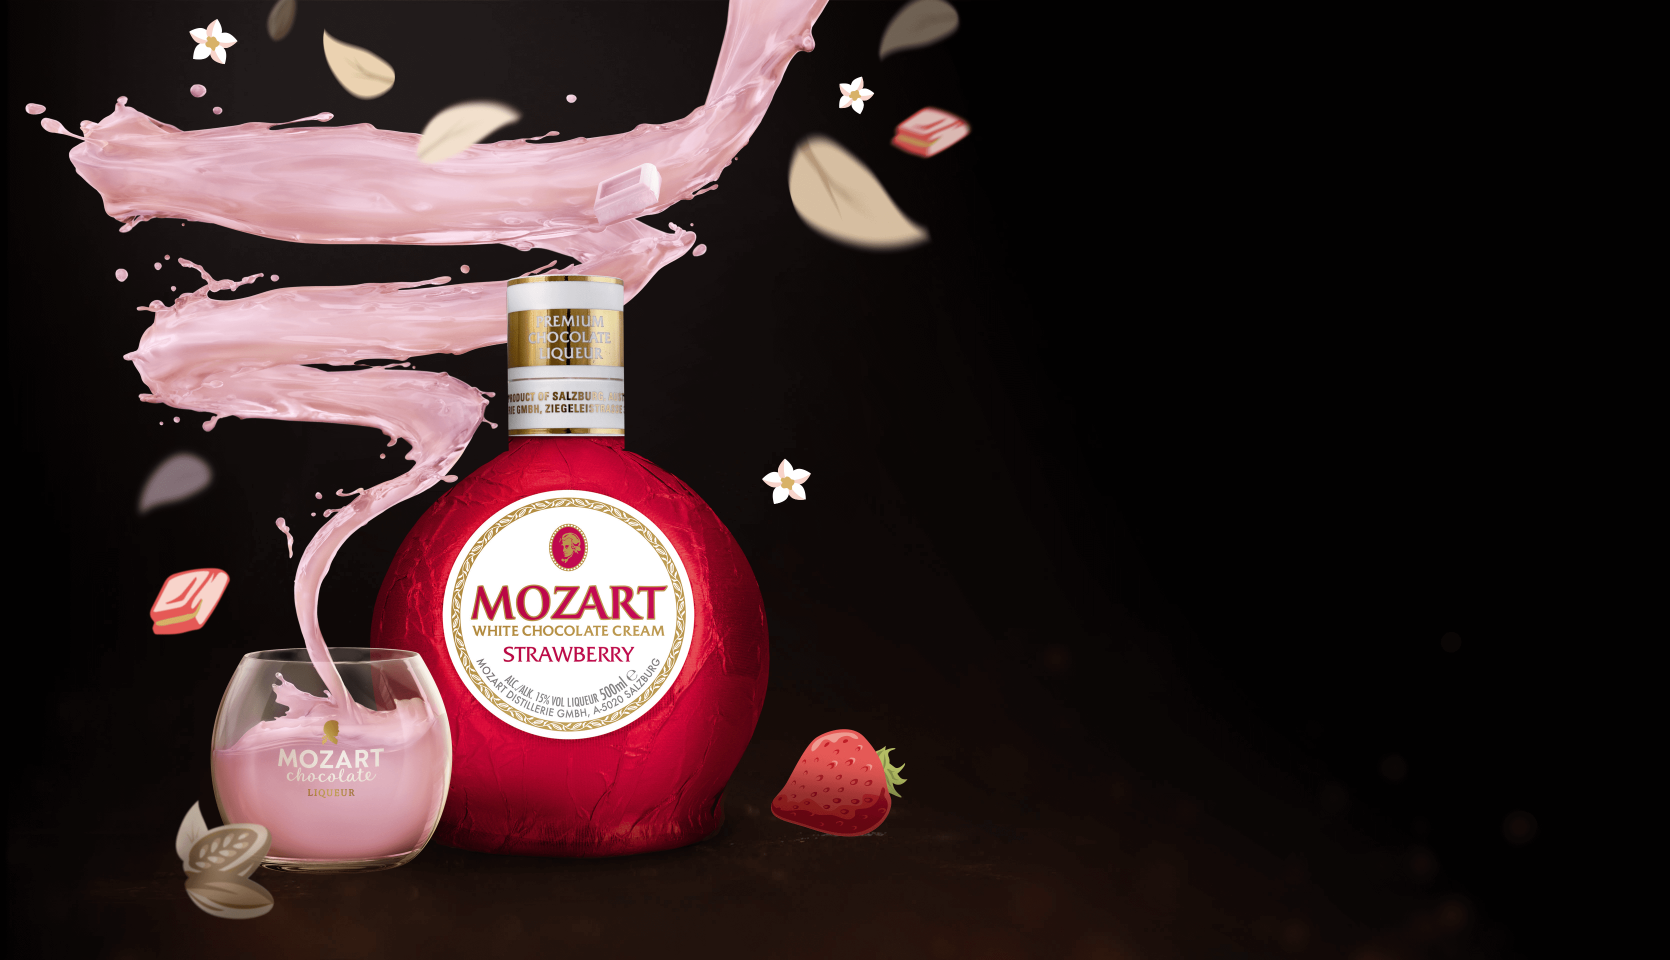 Mozart Chocolate Strawberry with chocolate swirl and Mozart glass